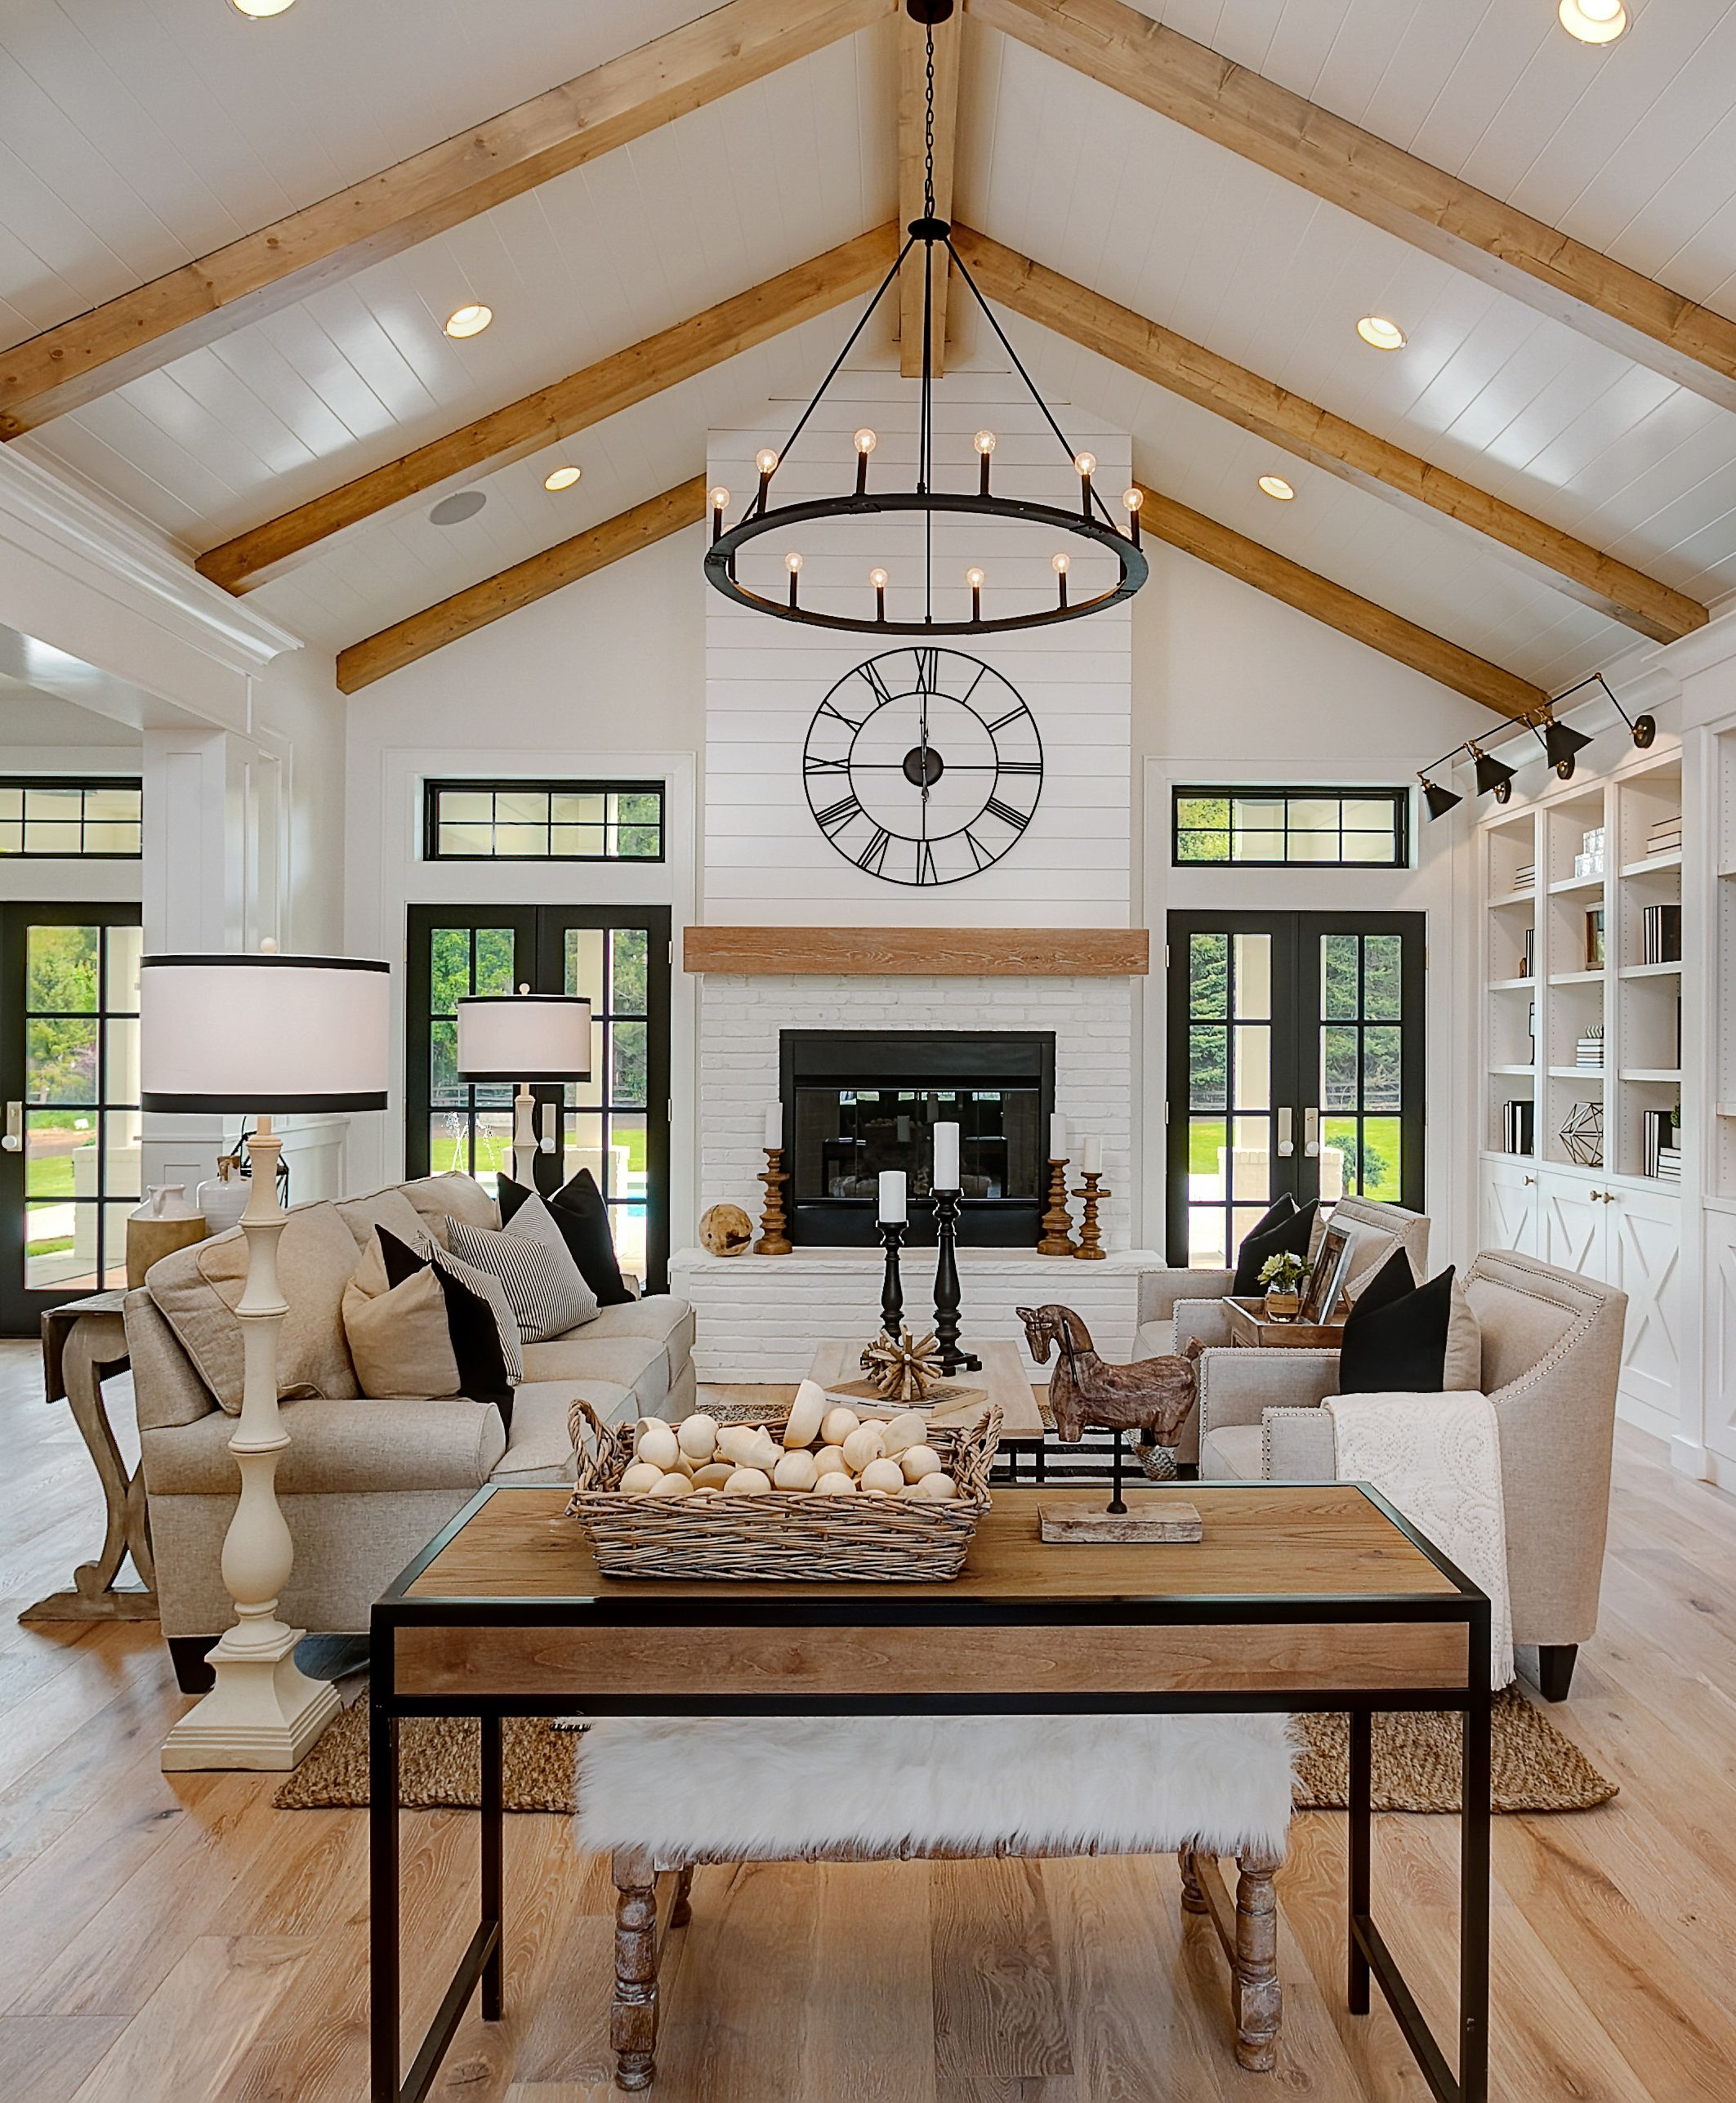 10+ Best Open Ceiling Living Room